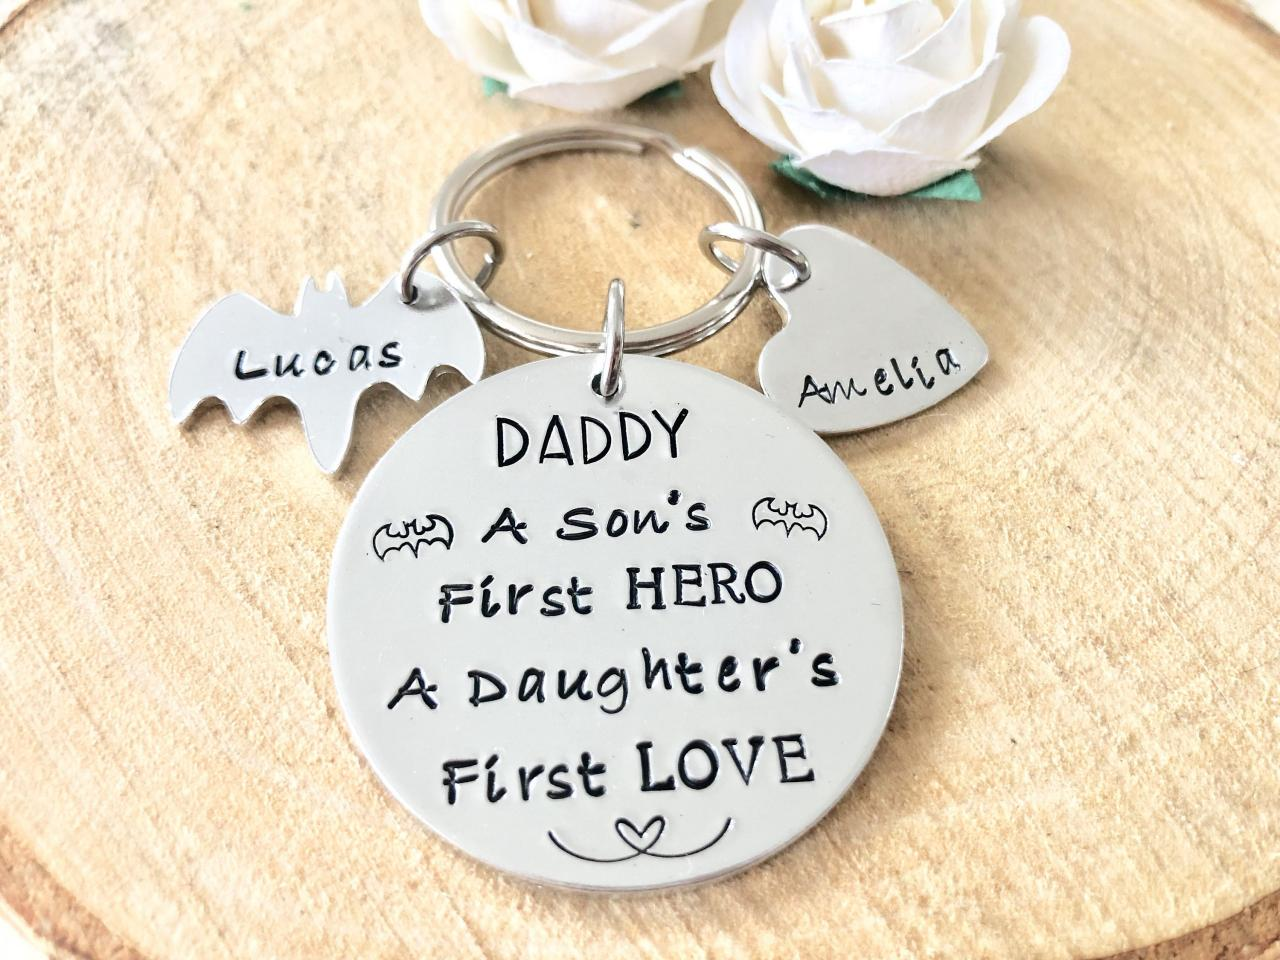 Dad Gift, Dad Birthday Gift, Gift for daddy, father's day gift, gifts for dad, gift for father, new dad gift, daddy gifts, dad keychain, dad